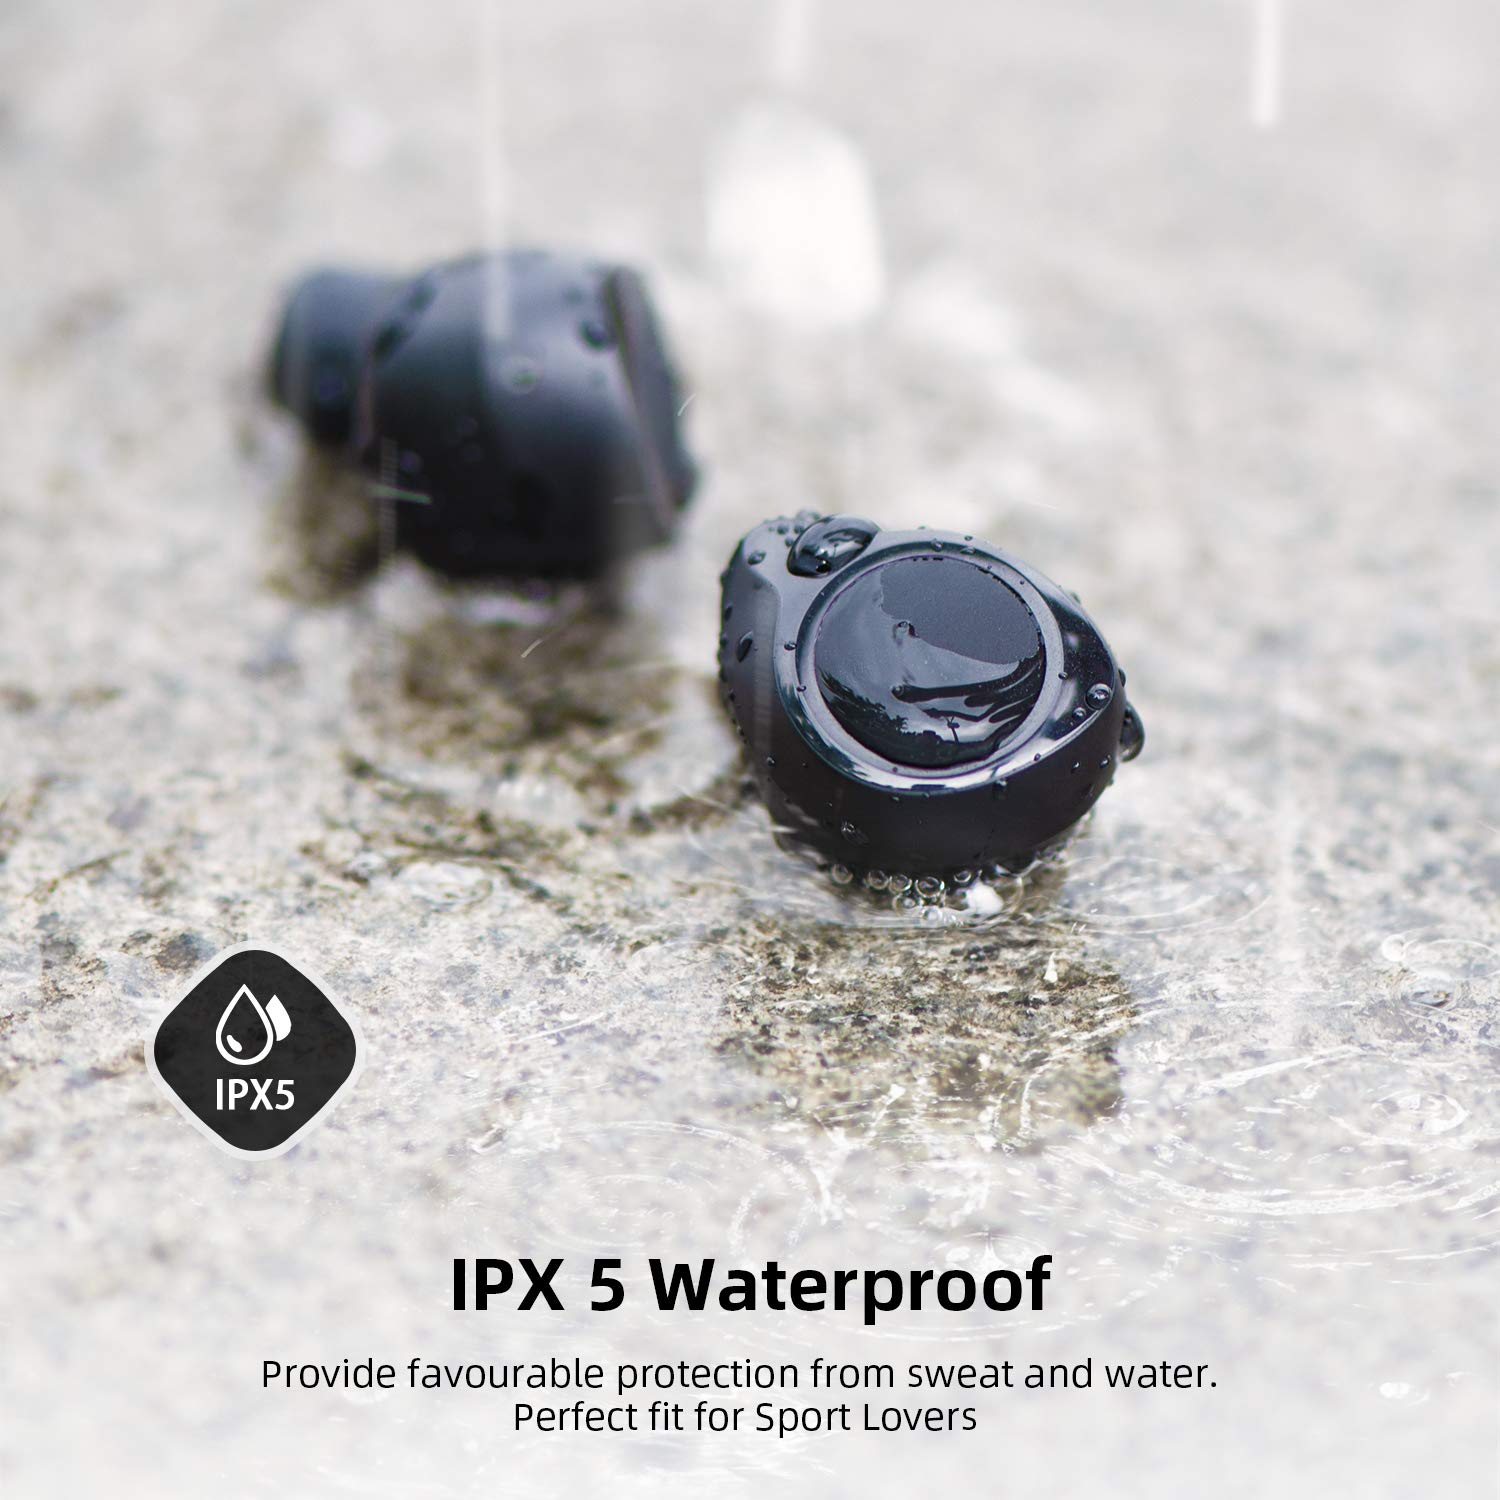 Bluetooth 5.0 Wireless Headphones, ENACFIRE Future Plus Wireless Bluetooth Earbuds with 104 Cycle Playing Time IPX5 Waterproof for Sport One-Key Control Hi-Fi Sound Quality Stable Connection by ENACFIRE (Image #2)